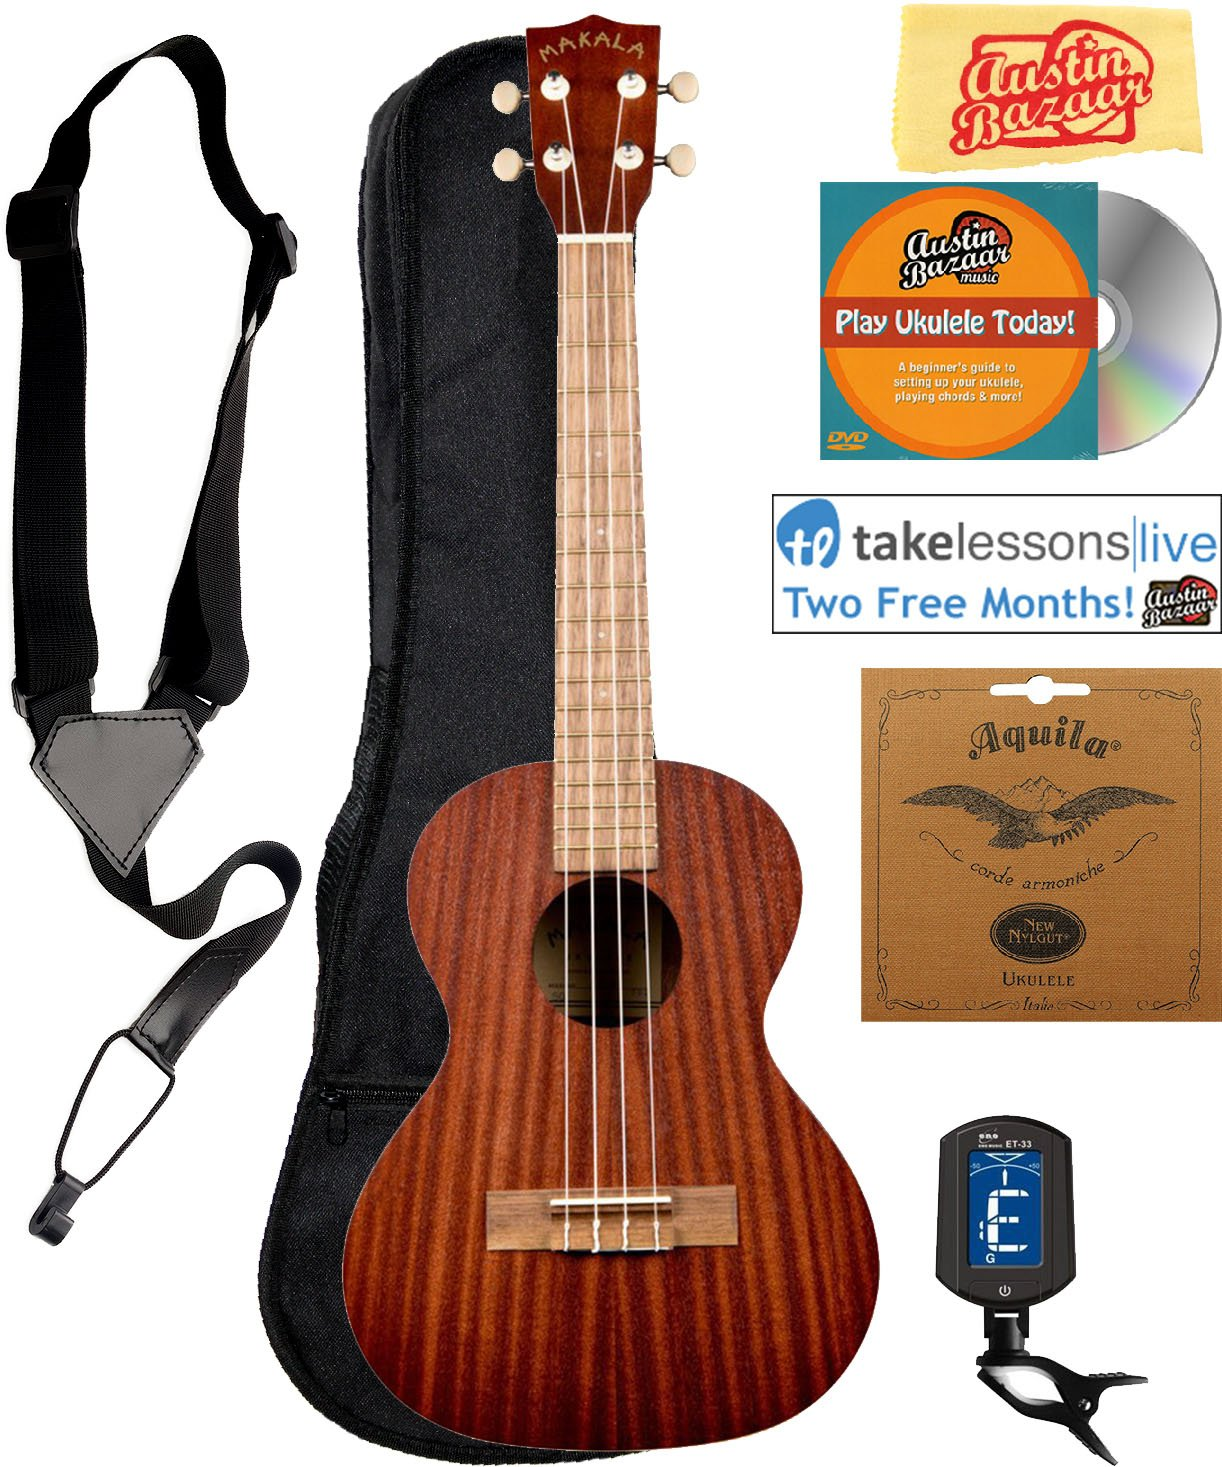 4. Kala MK-T Makala Tenor Ukulele Bundle with Gig Bag